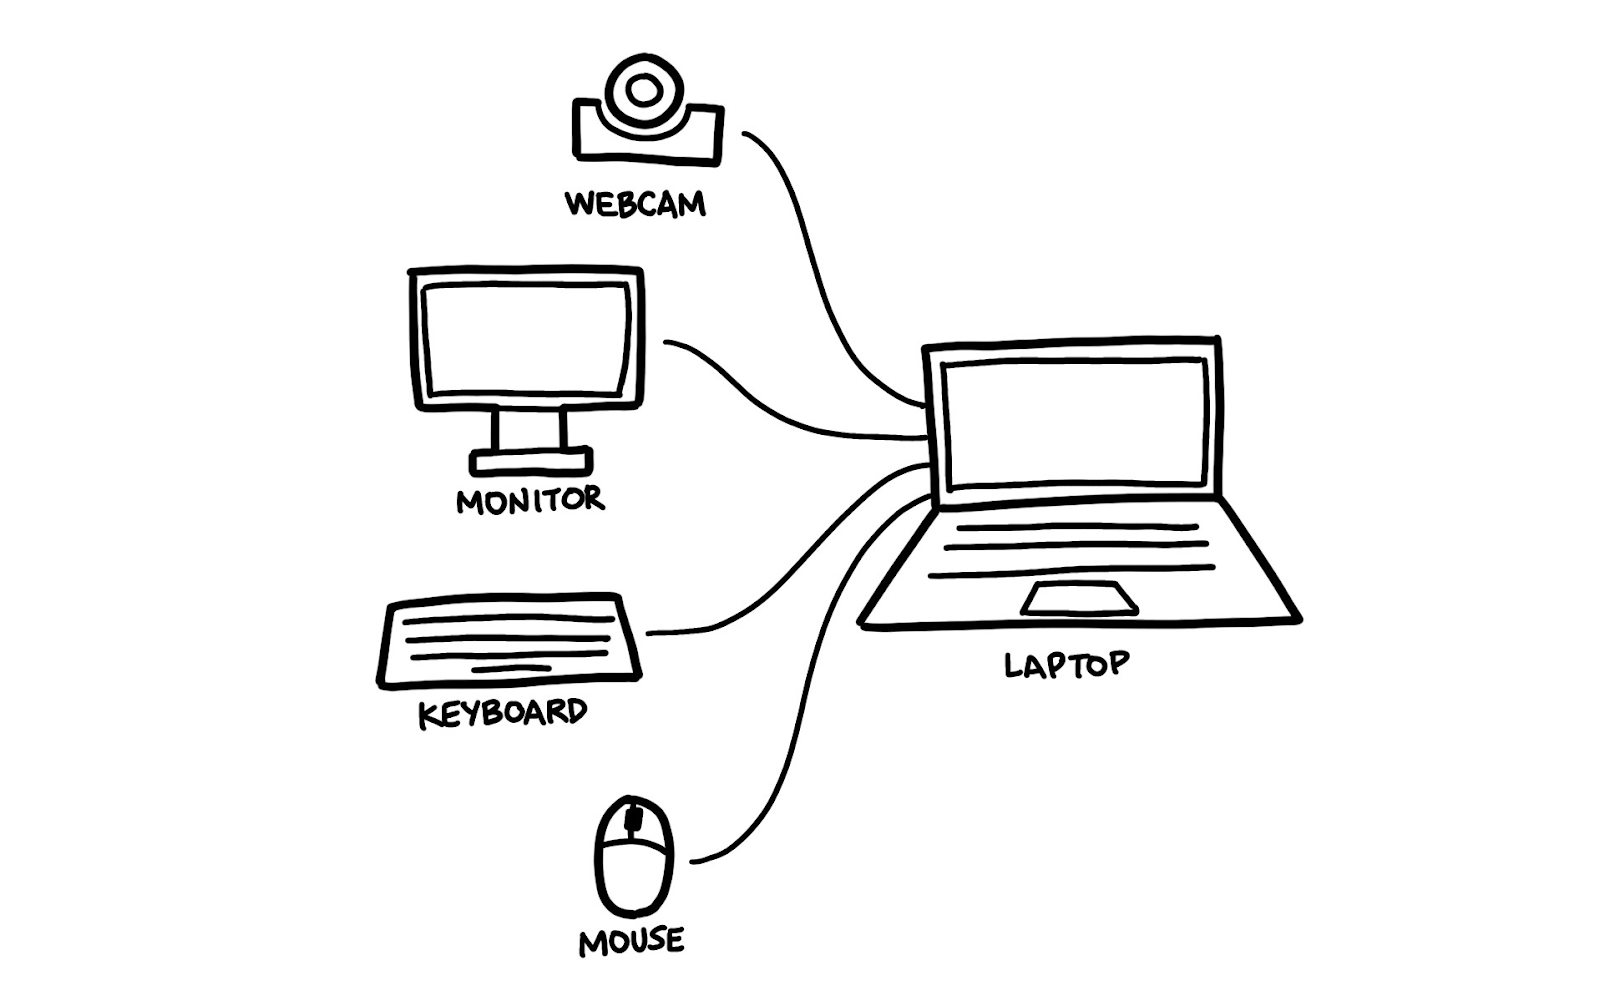 A d iagram showing a webcam, monitor, keyboard and mouse plugged into a laptop